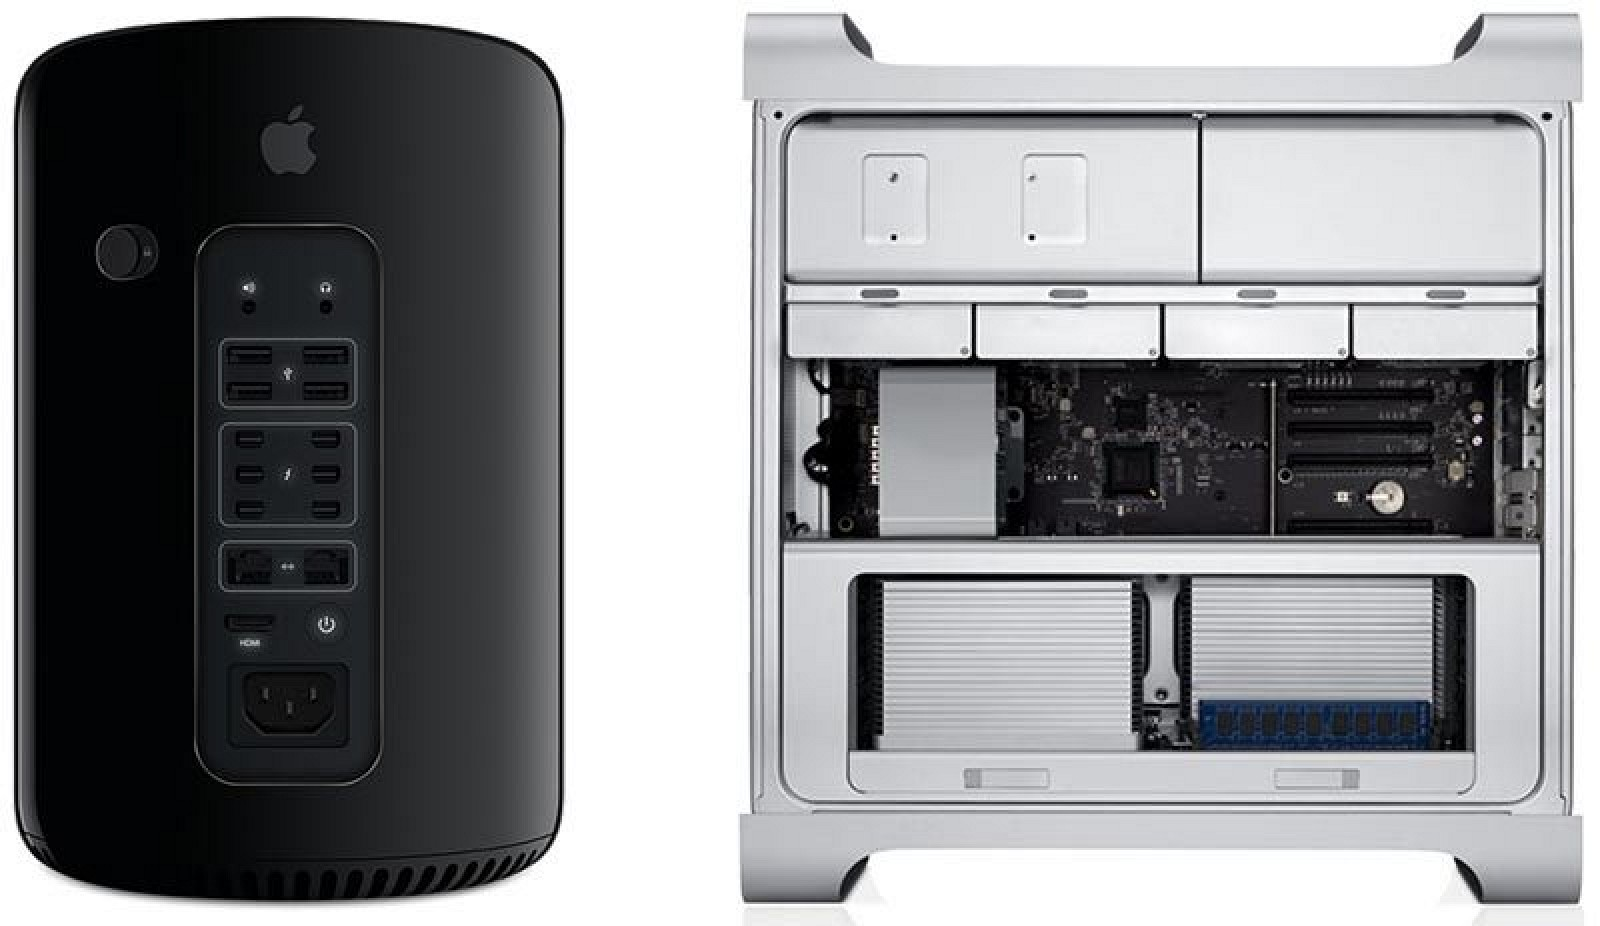 Apple Continues to Work on All-New Mac Pro With Upgradeable Design - MacRumors